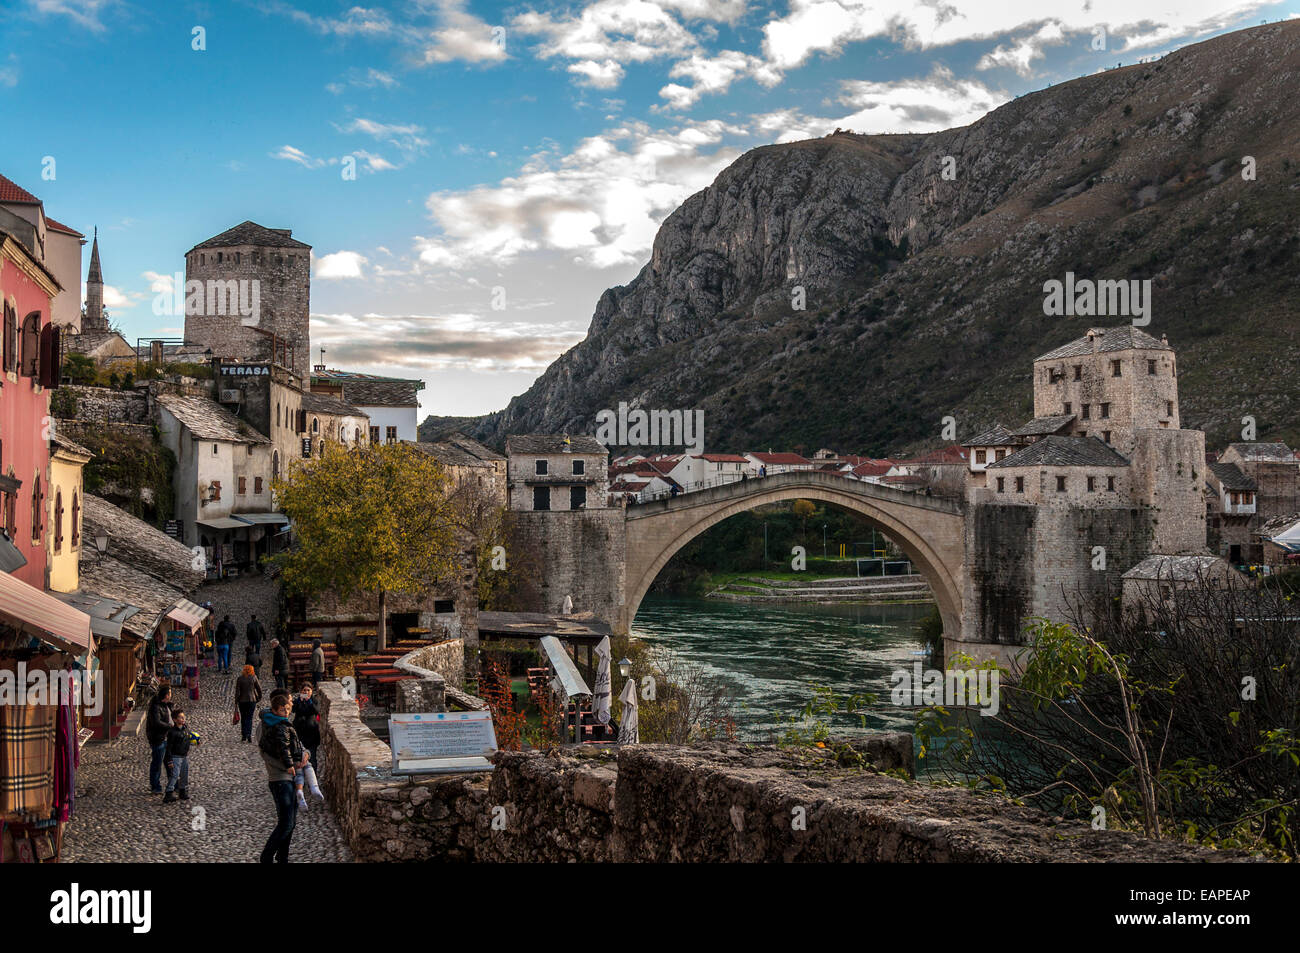 Mostar in Bosnia and Hercegovina the old town and Stari Most or Old Bridge - Stock Image